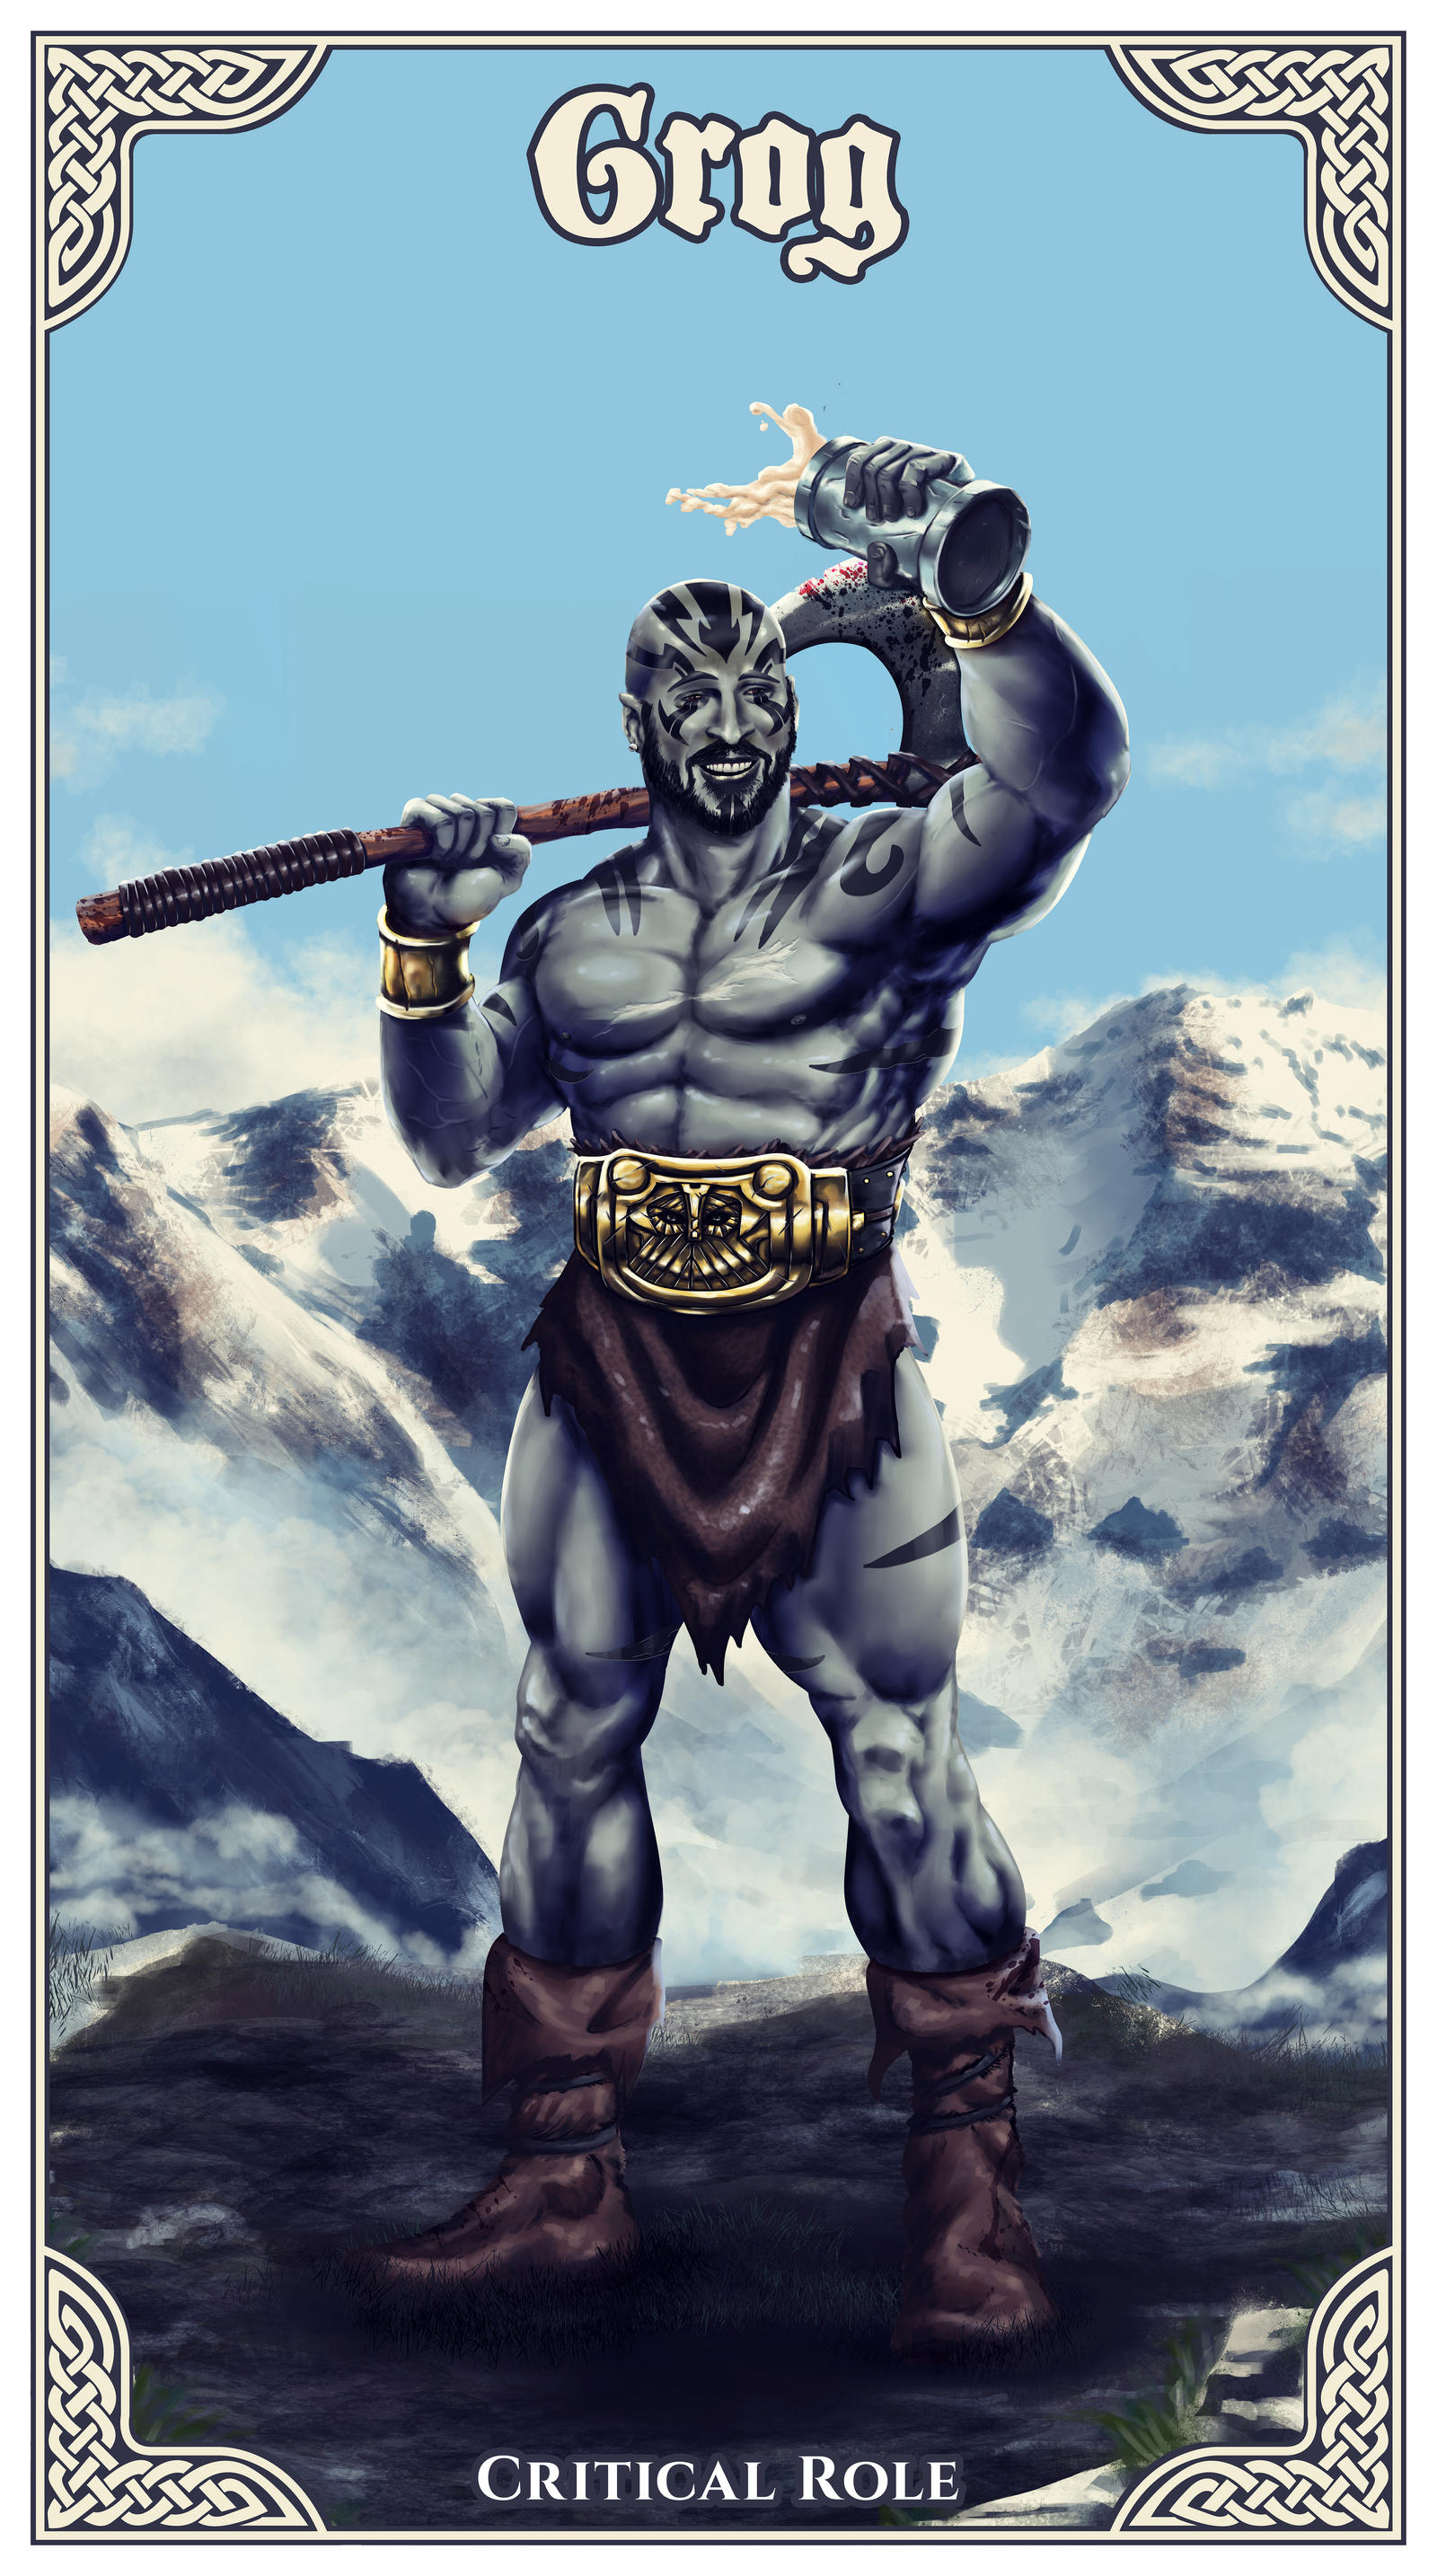 Grog Critical Role By Ibeenthere On Deviantart Amazing dungeons & dragons fan art. grog critical role by ibeenthere on